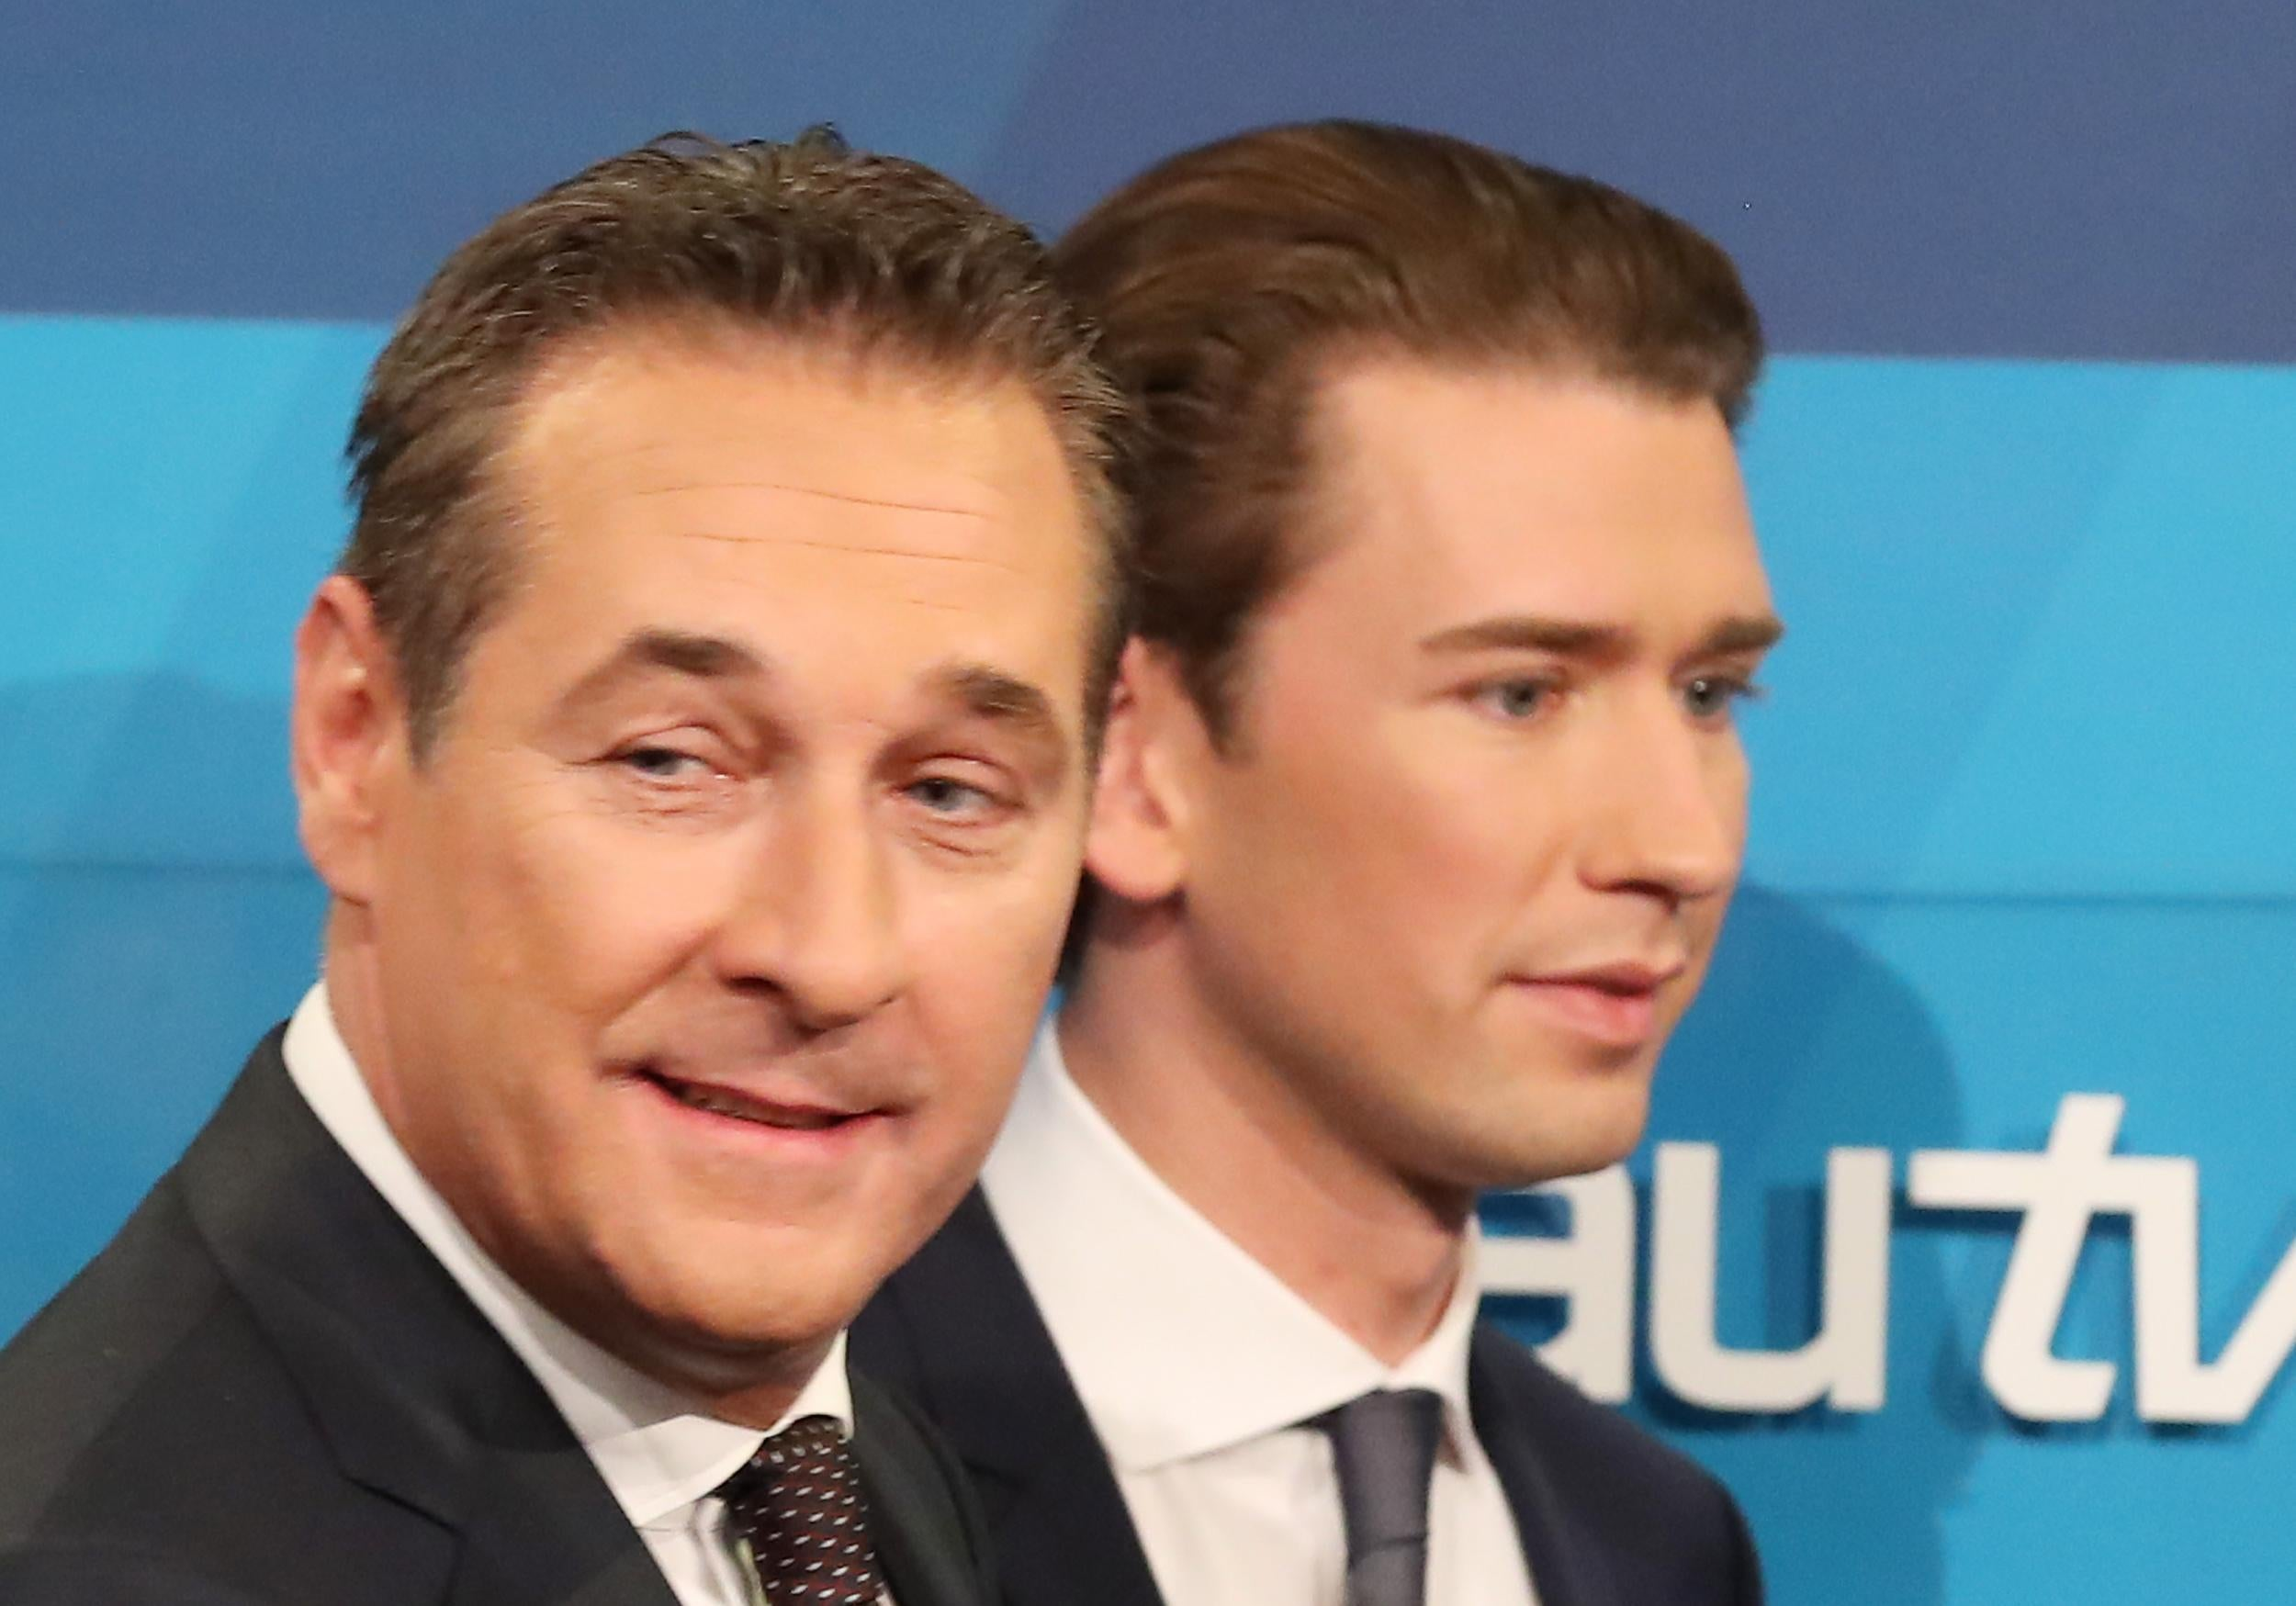 Austria's new far-right/conservative government to impose 'sanctions' on immigrants who keep their own culture